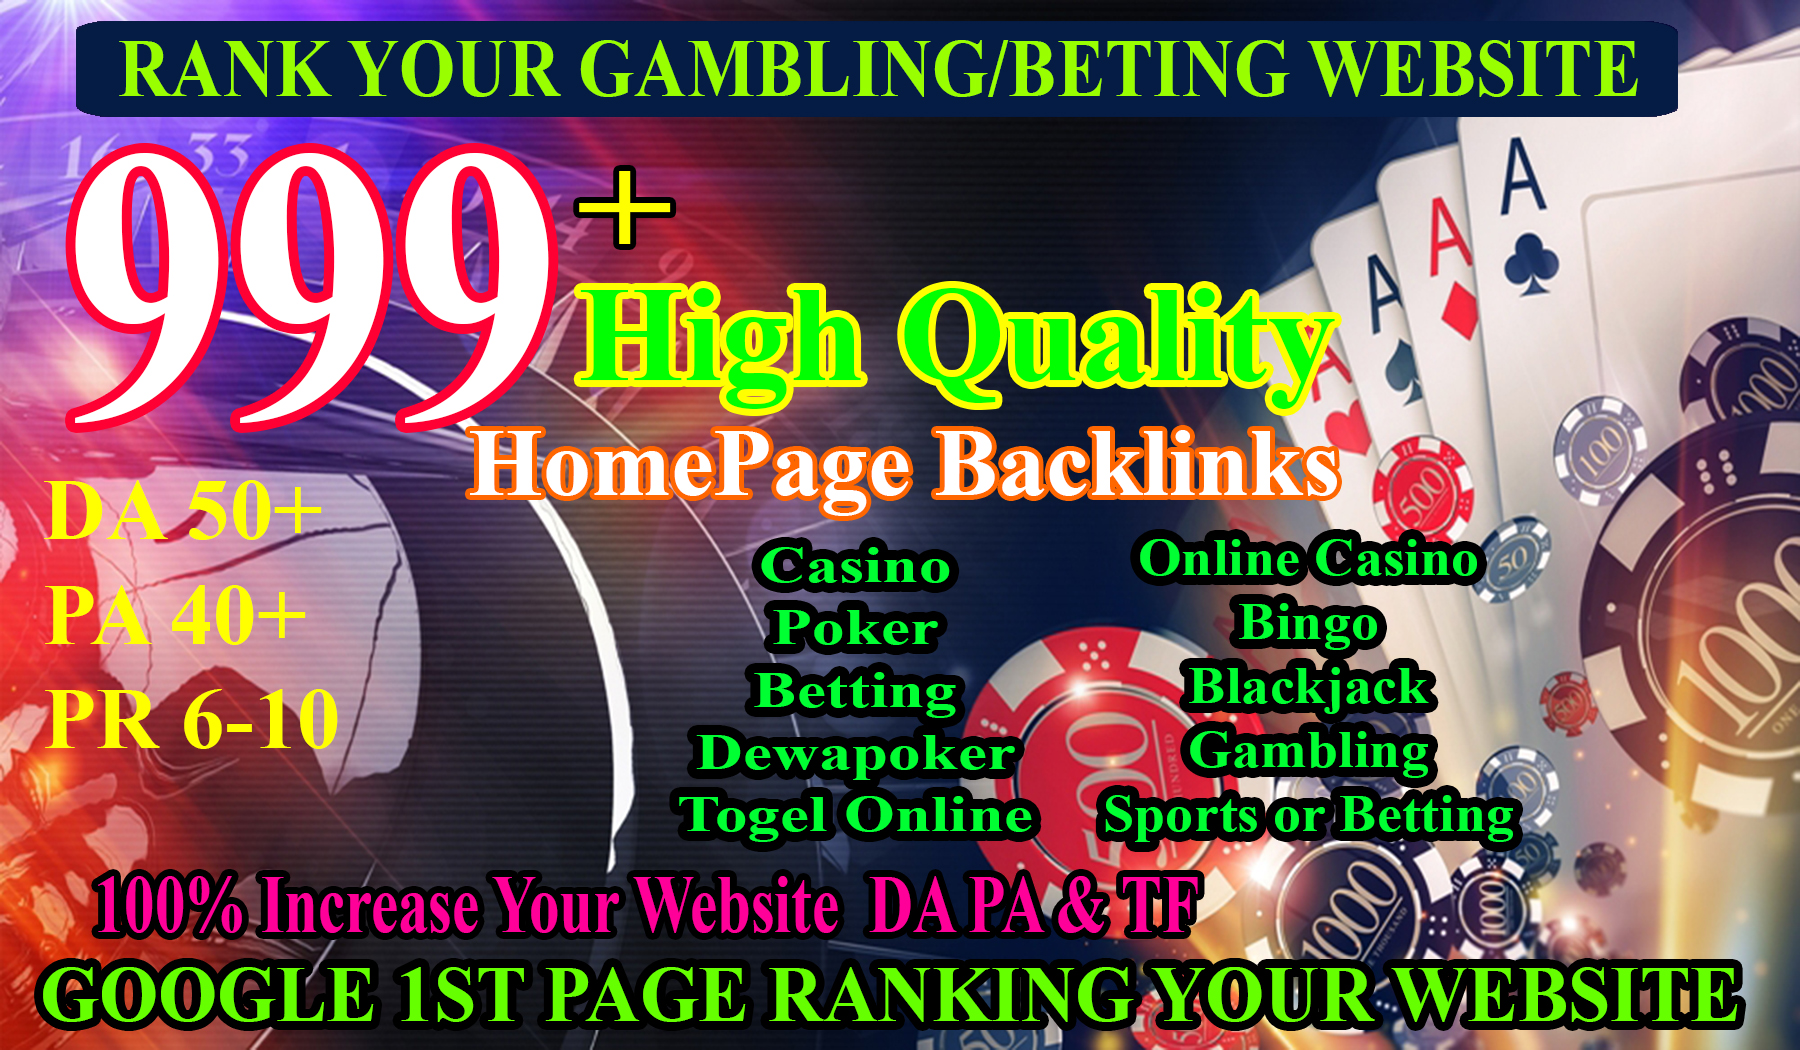 Hot Offer 999+ Powerful Casino,  Gambling,  Poker,  Sports High Quality Homepage Backlinks DA70+ PA50+